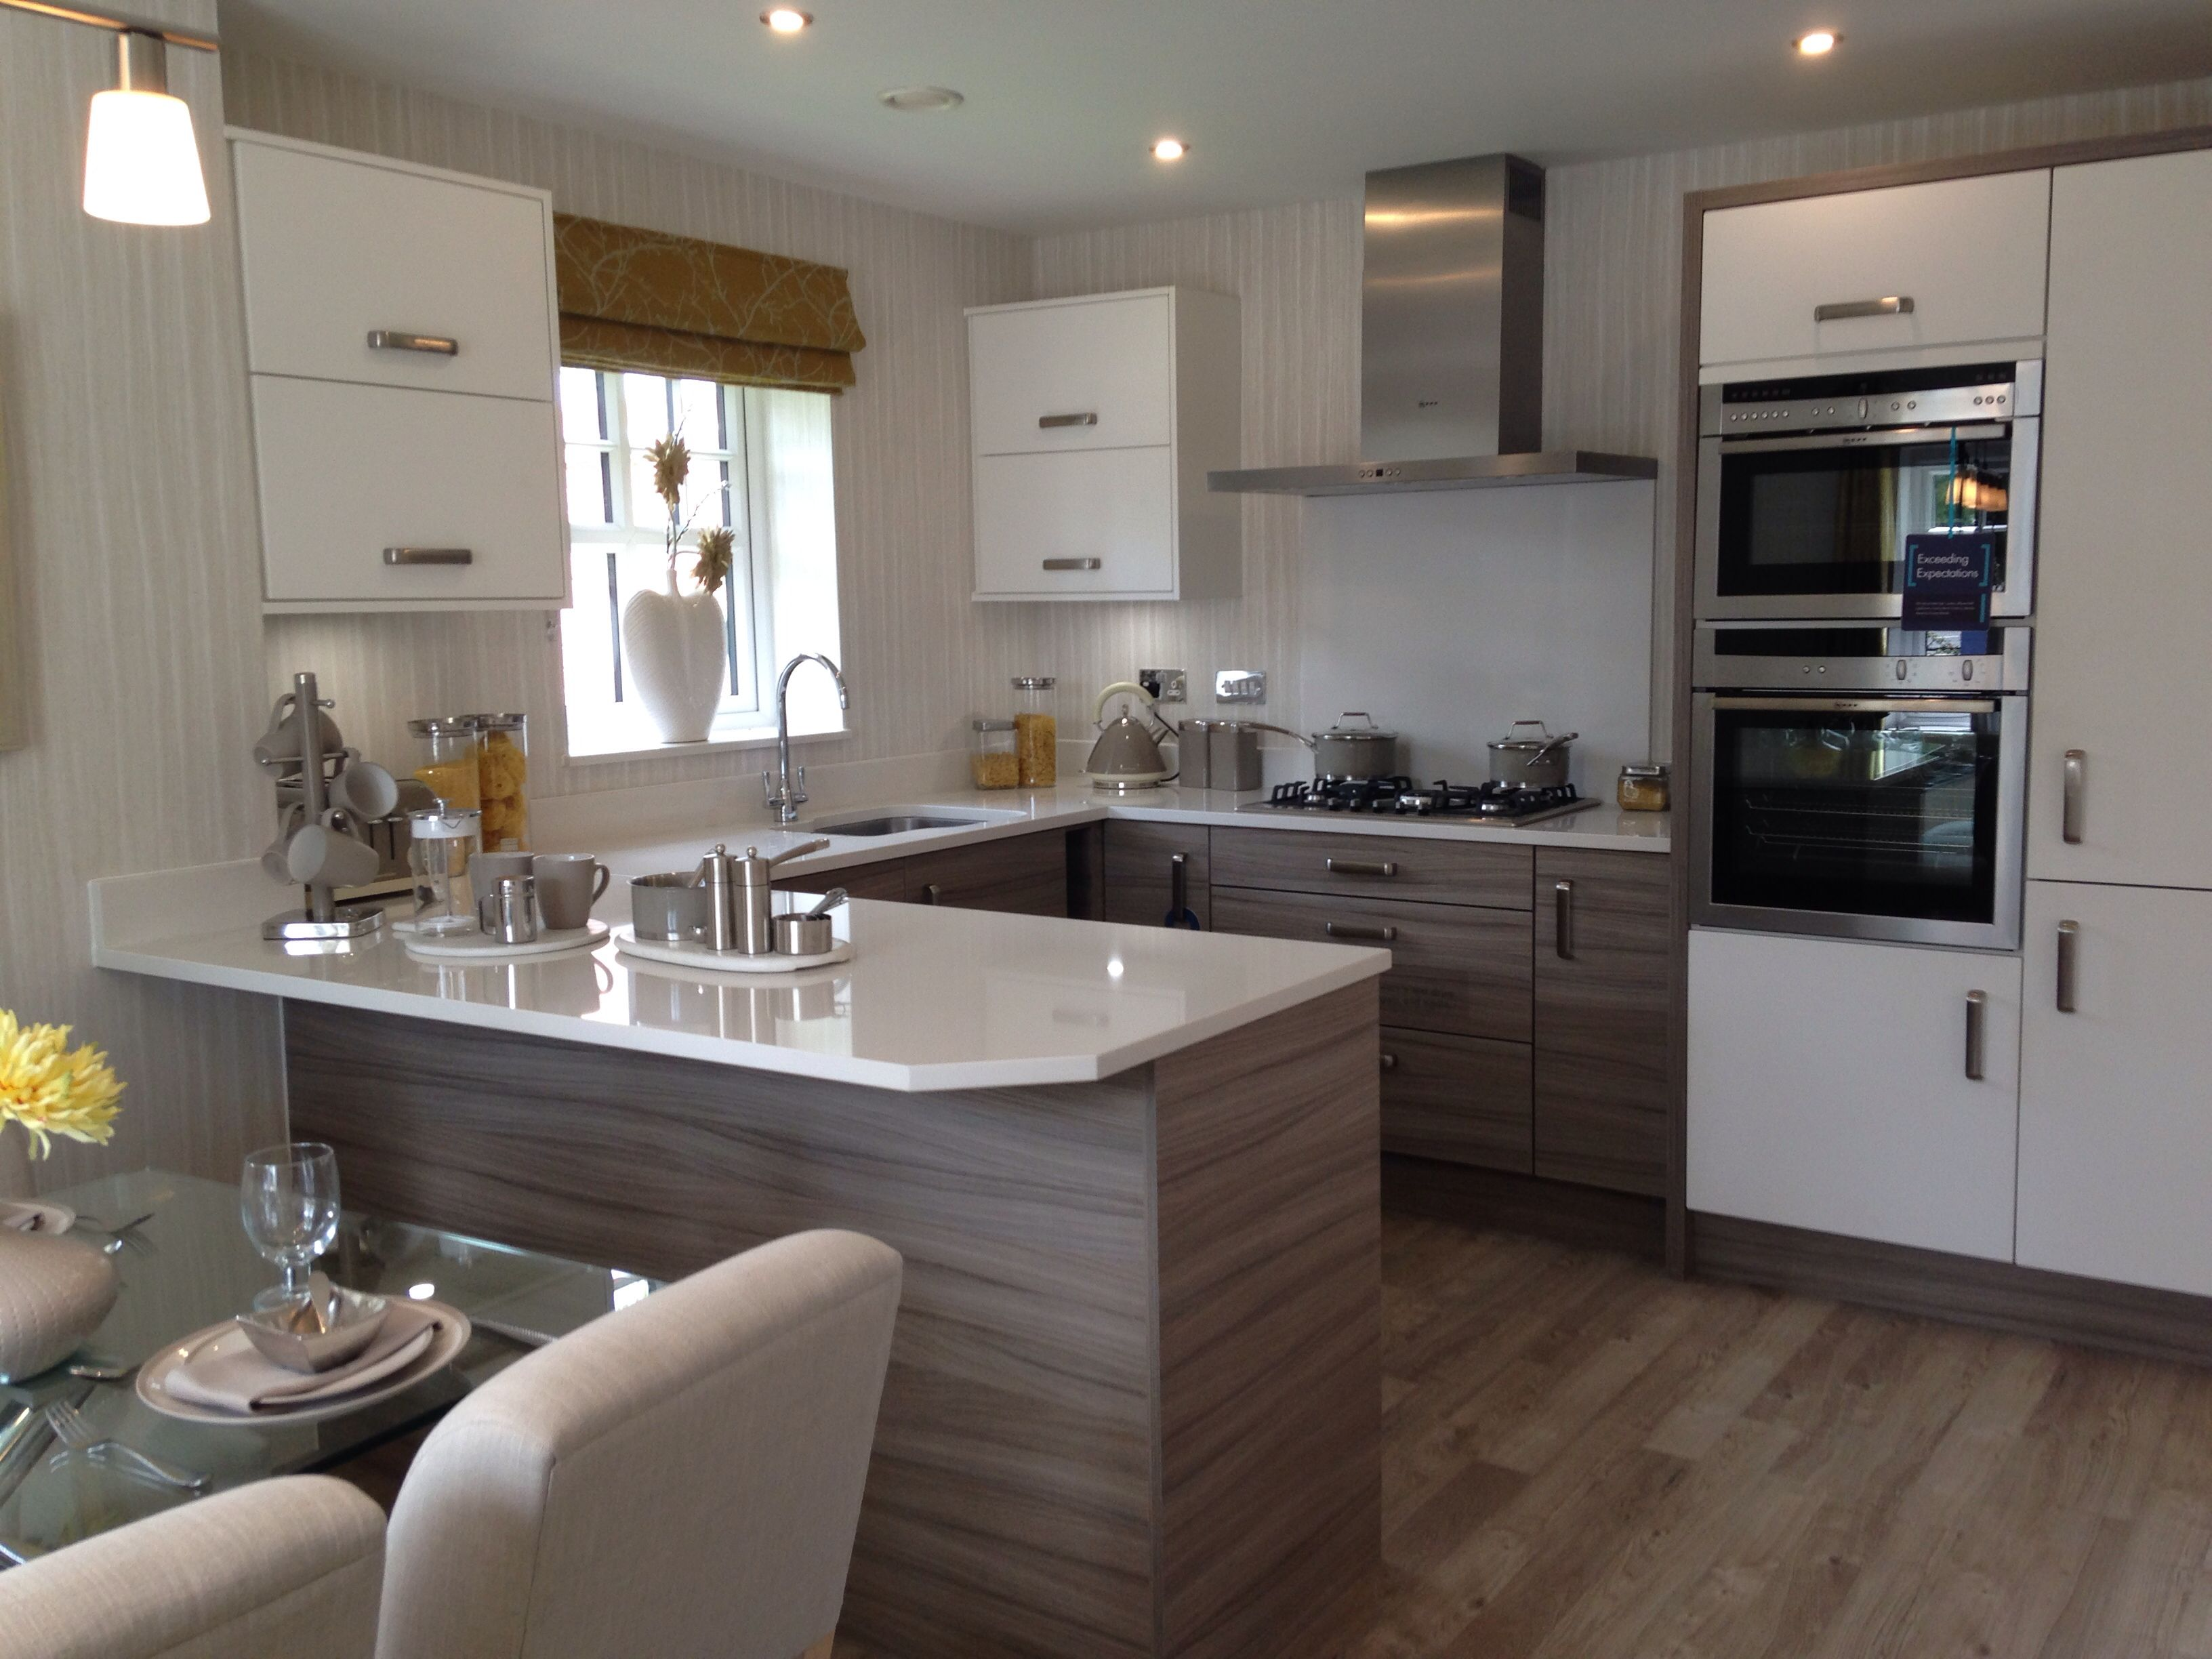 Morris show home kitchen bollington 2 special for Morris home